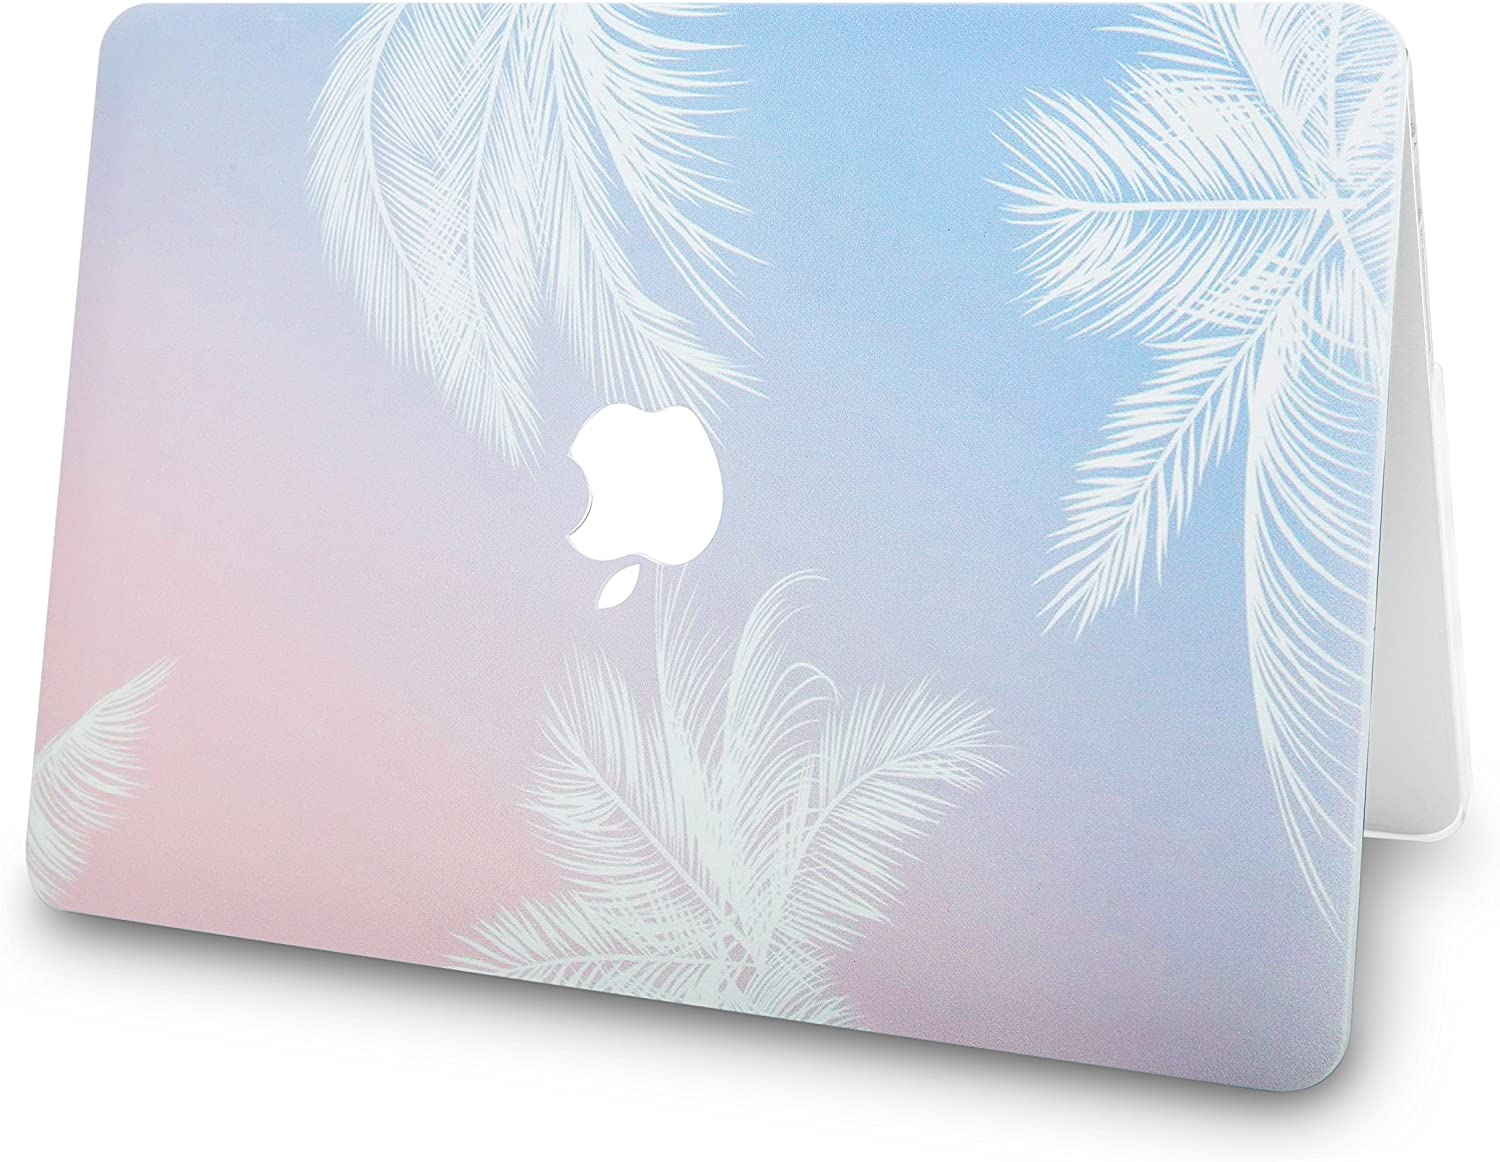 Sleeve 2020//2019//2018, Touch ID Screen Protector A1932 Blue Feather w//UK Keyboard Cover Plastic Hard Shell KECC MacBook Air 13 Retina